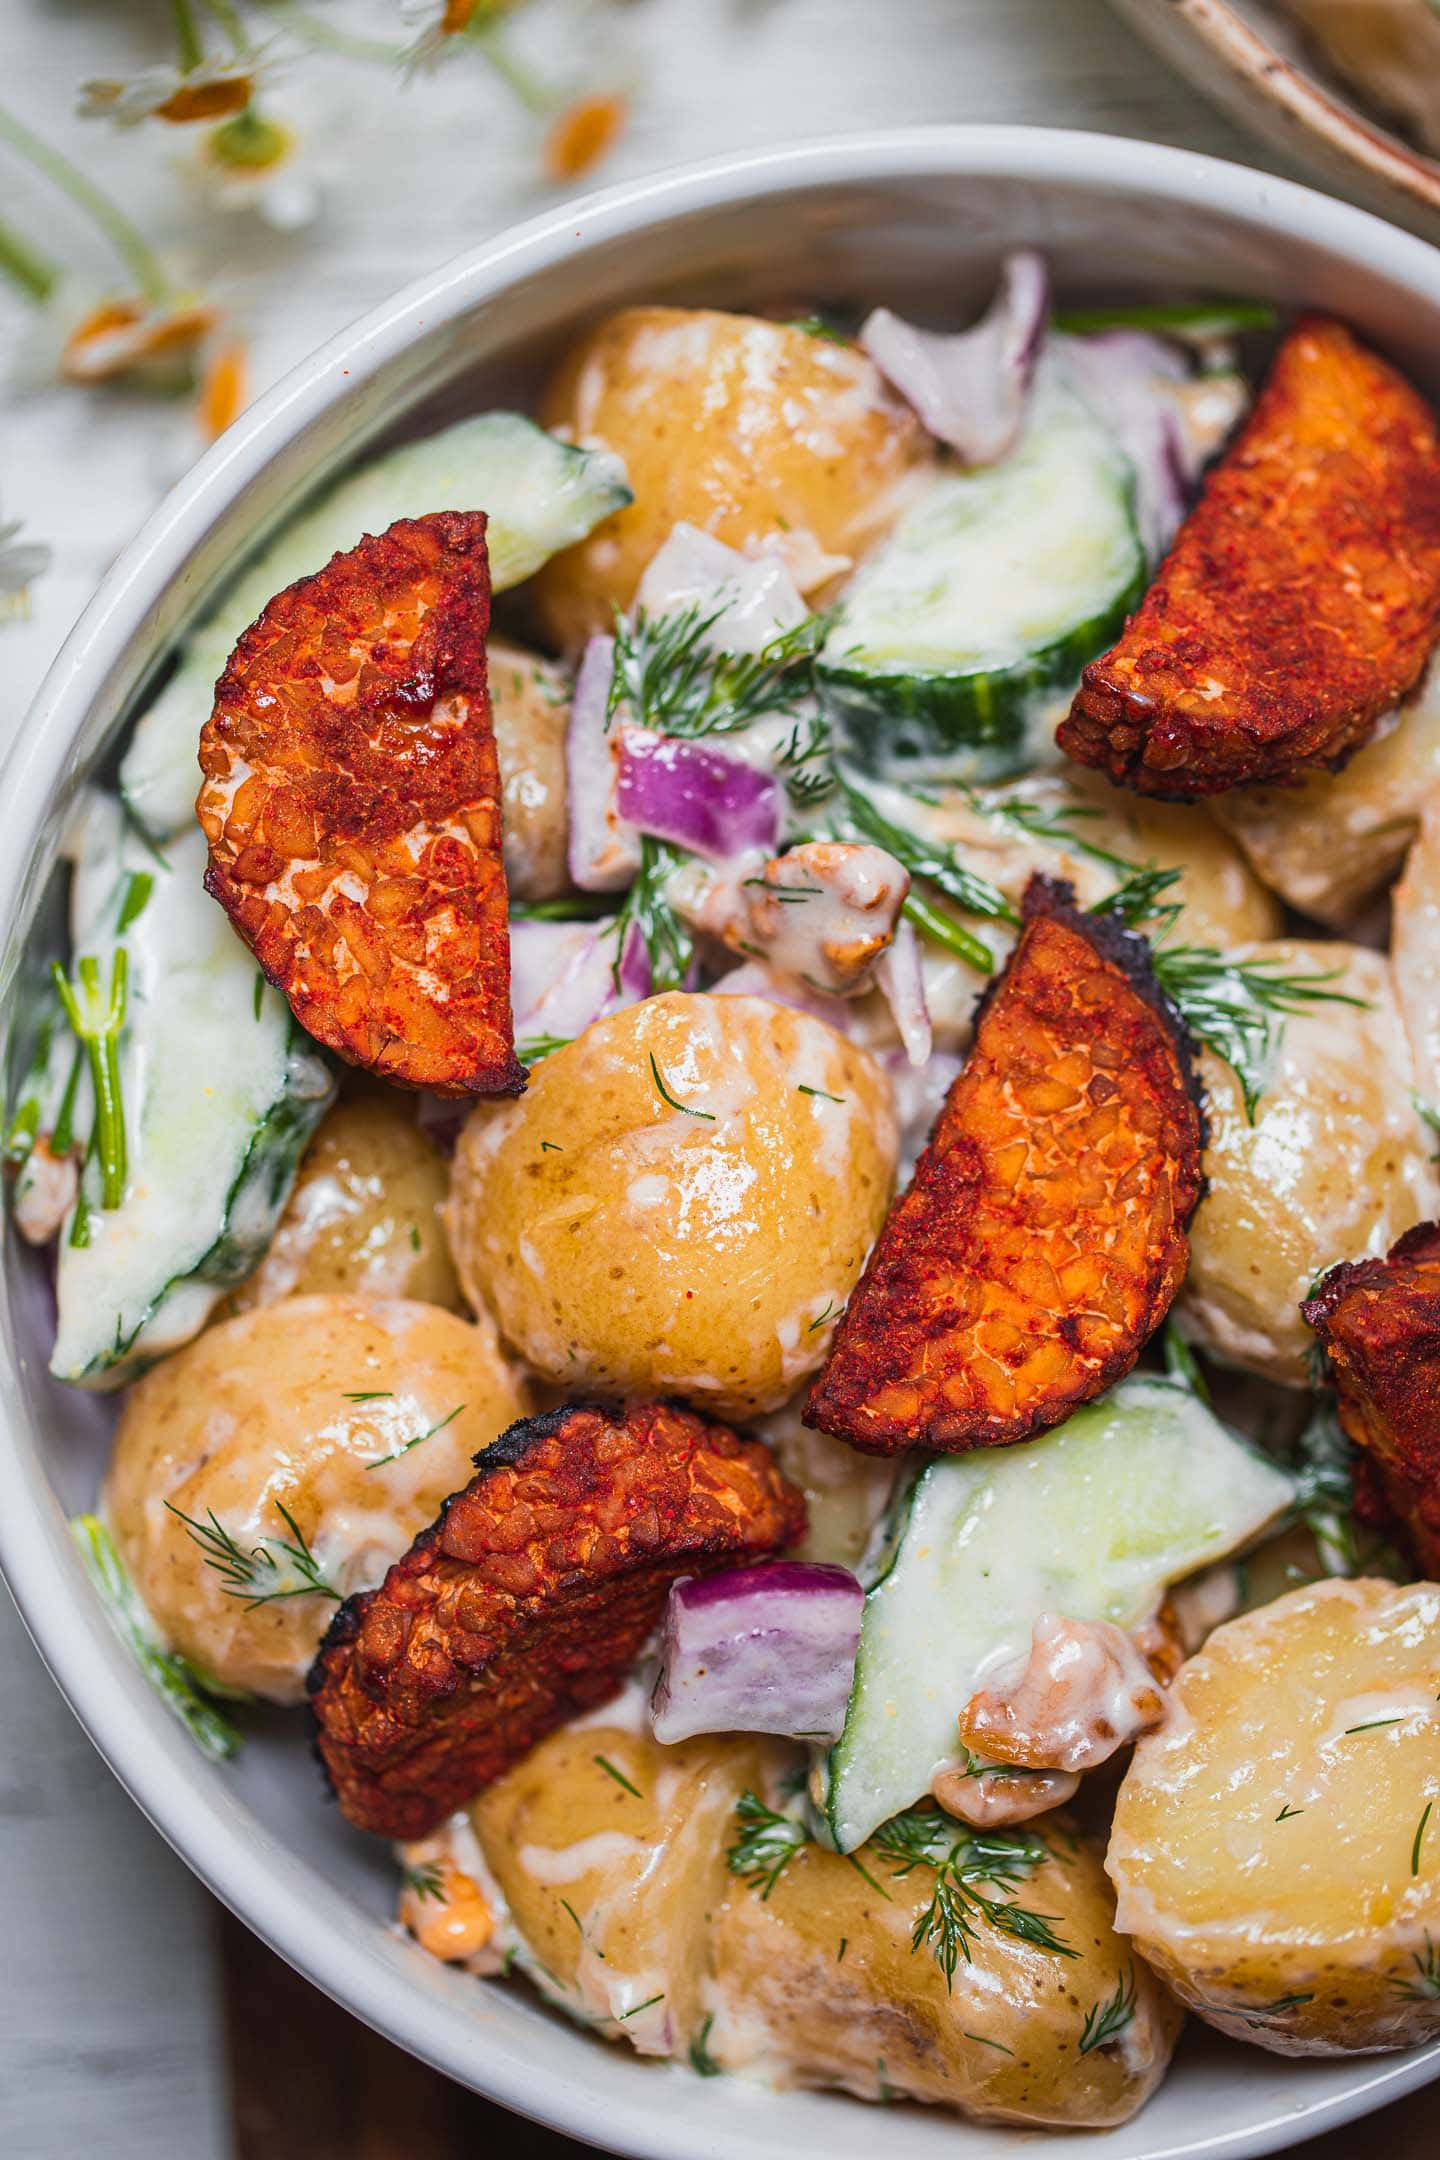 Closeup of a vegan potato salad with tempeh